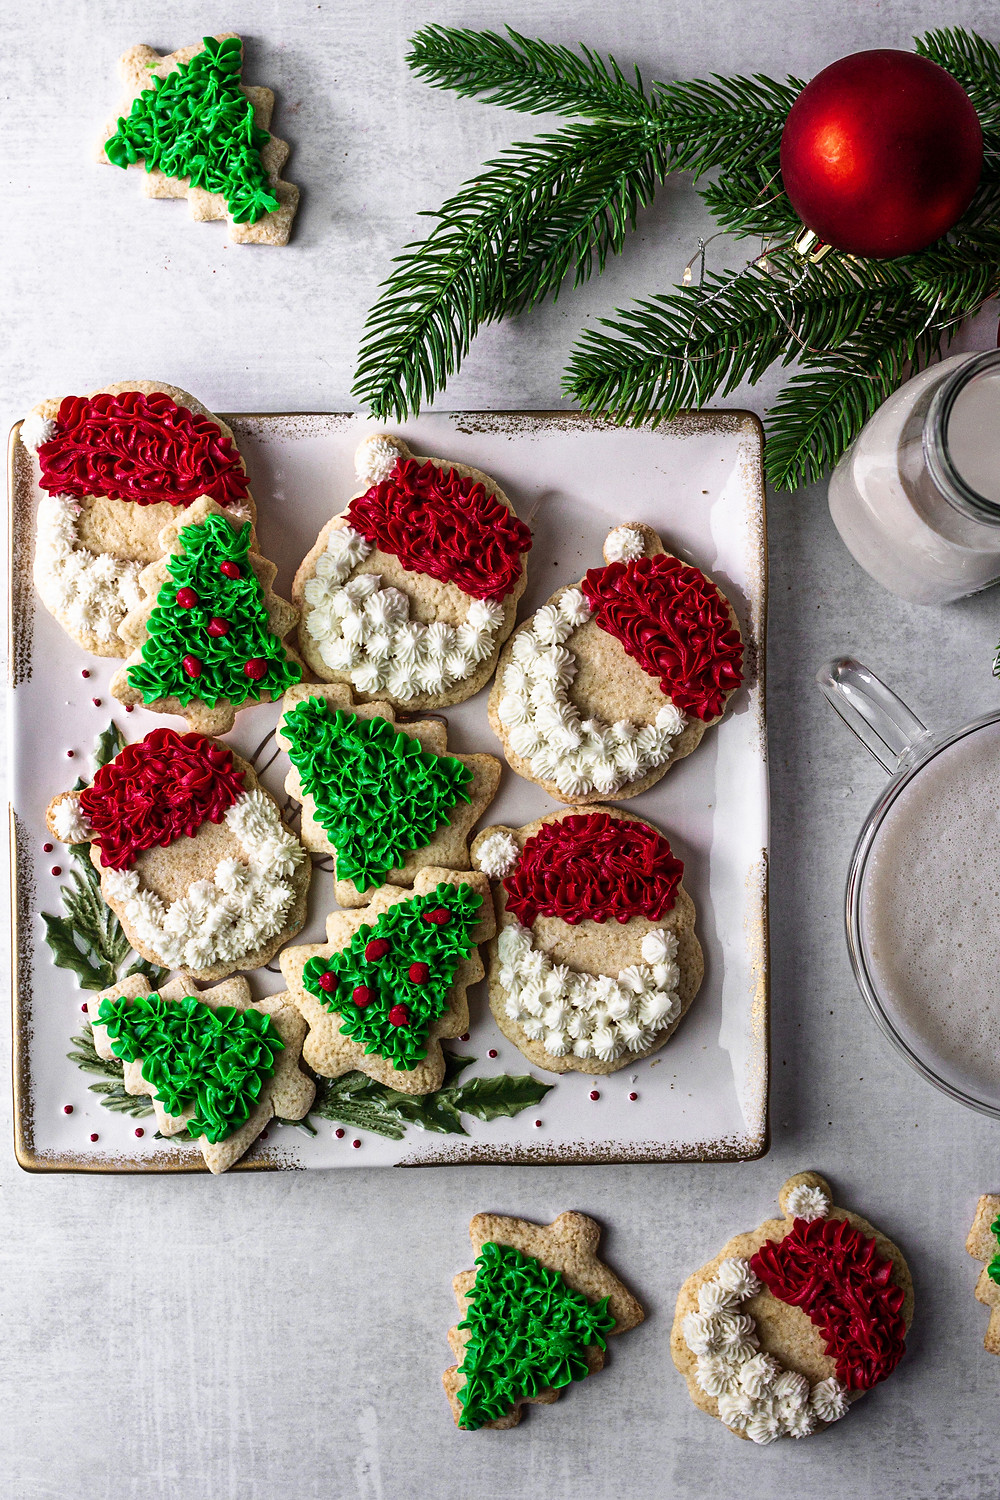 Paleo Christmas Cut Out Cookies - A low FODMAP Dessert | Pretty Delicious Life - To say I am excited to share this recipe with you is a serious understatement. This holiday season I have been playing around with a lot of family favorite dessert recipes, turning them into low FODMAP dessert recipes,